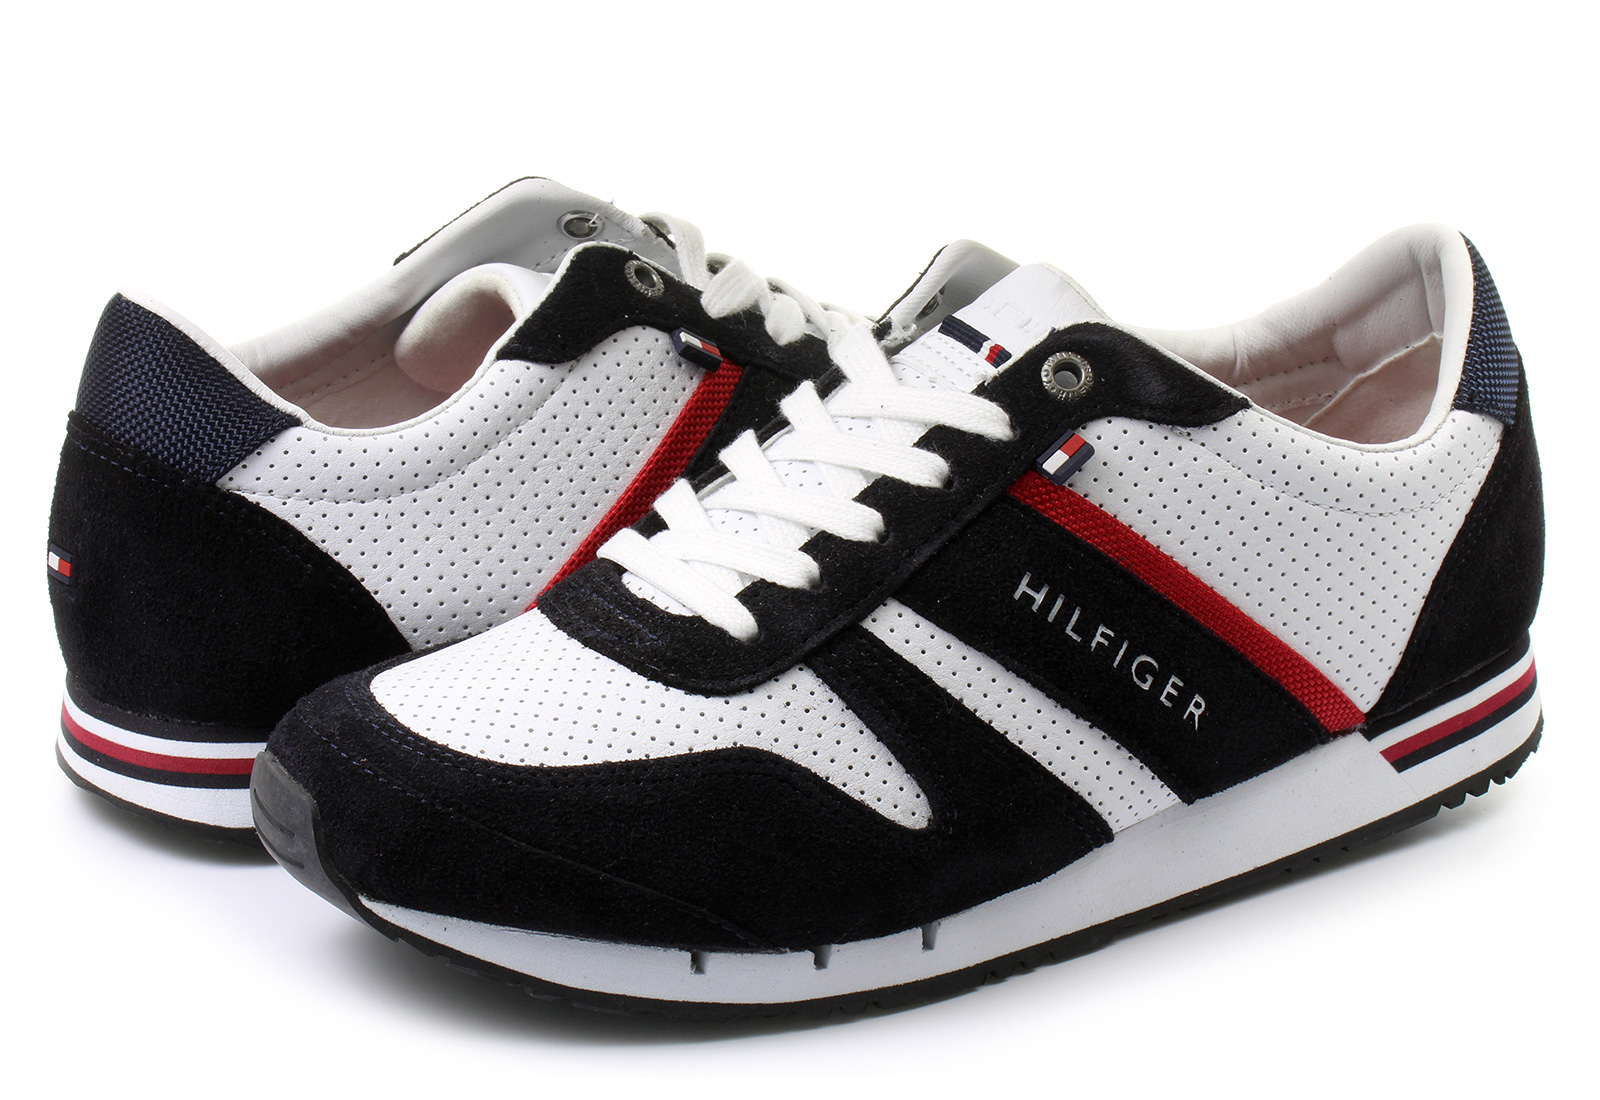 Tommy Hilfiger Shoes - Maxwell 5c - 16F-1349-910 - Online shop for ... 2a96fd7eb